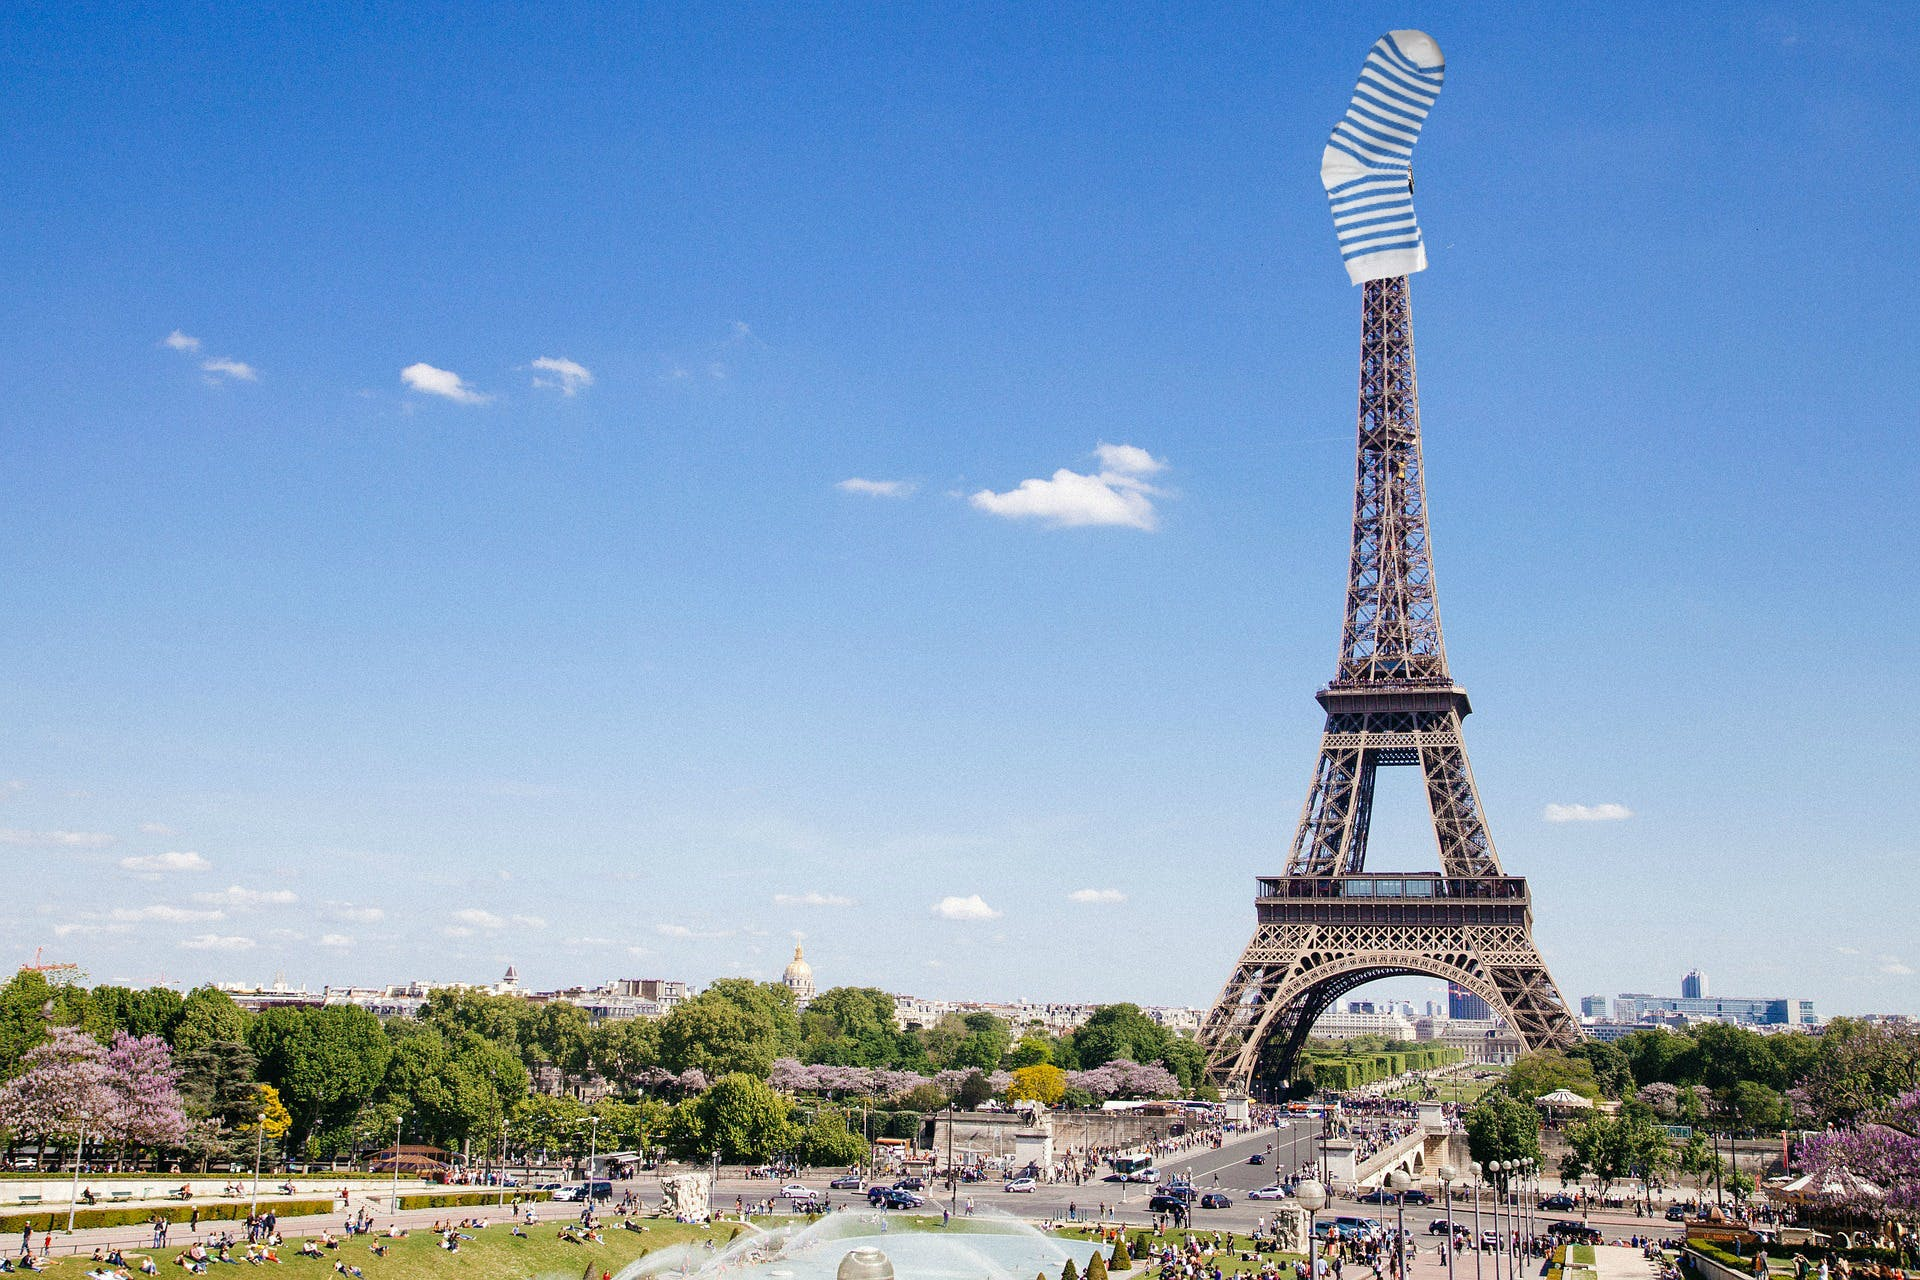 This sock is on top of the Eiffel Tower